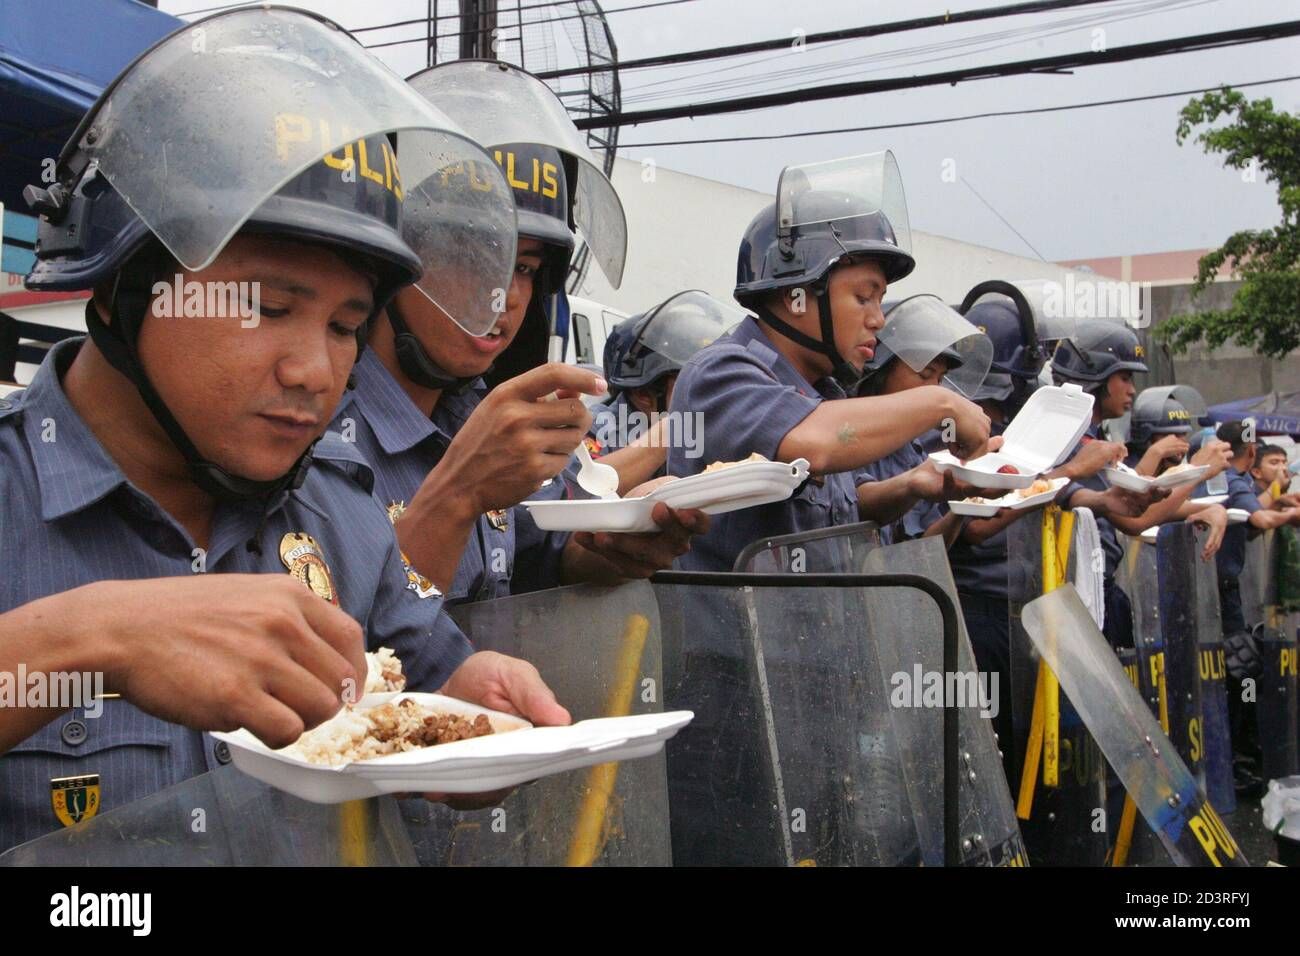 Filipino riot police take their lunch while blocking an anti-government protest march in the Manila suburb of Quezon City July 9, 2005. Philippine President Gloria Macapagal Arroyo could face judgment day on Saturday if the influential Catholic Bishops Conference of the Philippines joins the chorus calling for her to resign. Arroyo's political prognosis took a dramatic turn for the worse on Friday when, one by one, bastions of the establishment deserted her: cabinet ministers, corporate chieftains, civic groups and political allies. REUTERS/Claro Cortes IV  CC/CCK Stock Photo